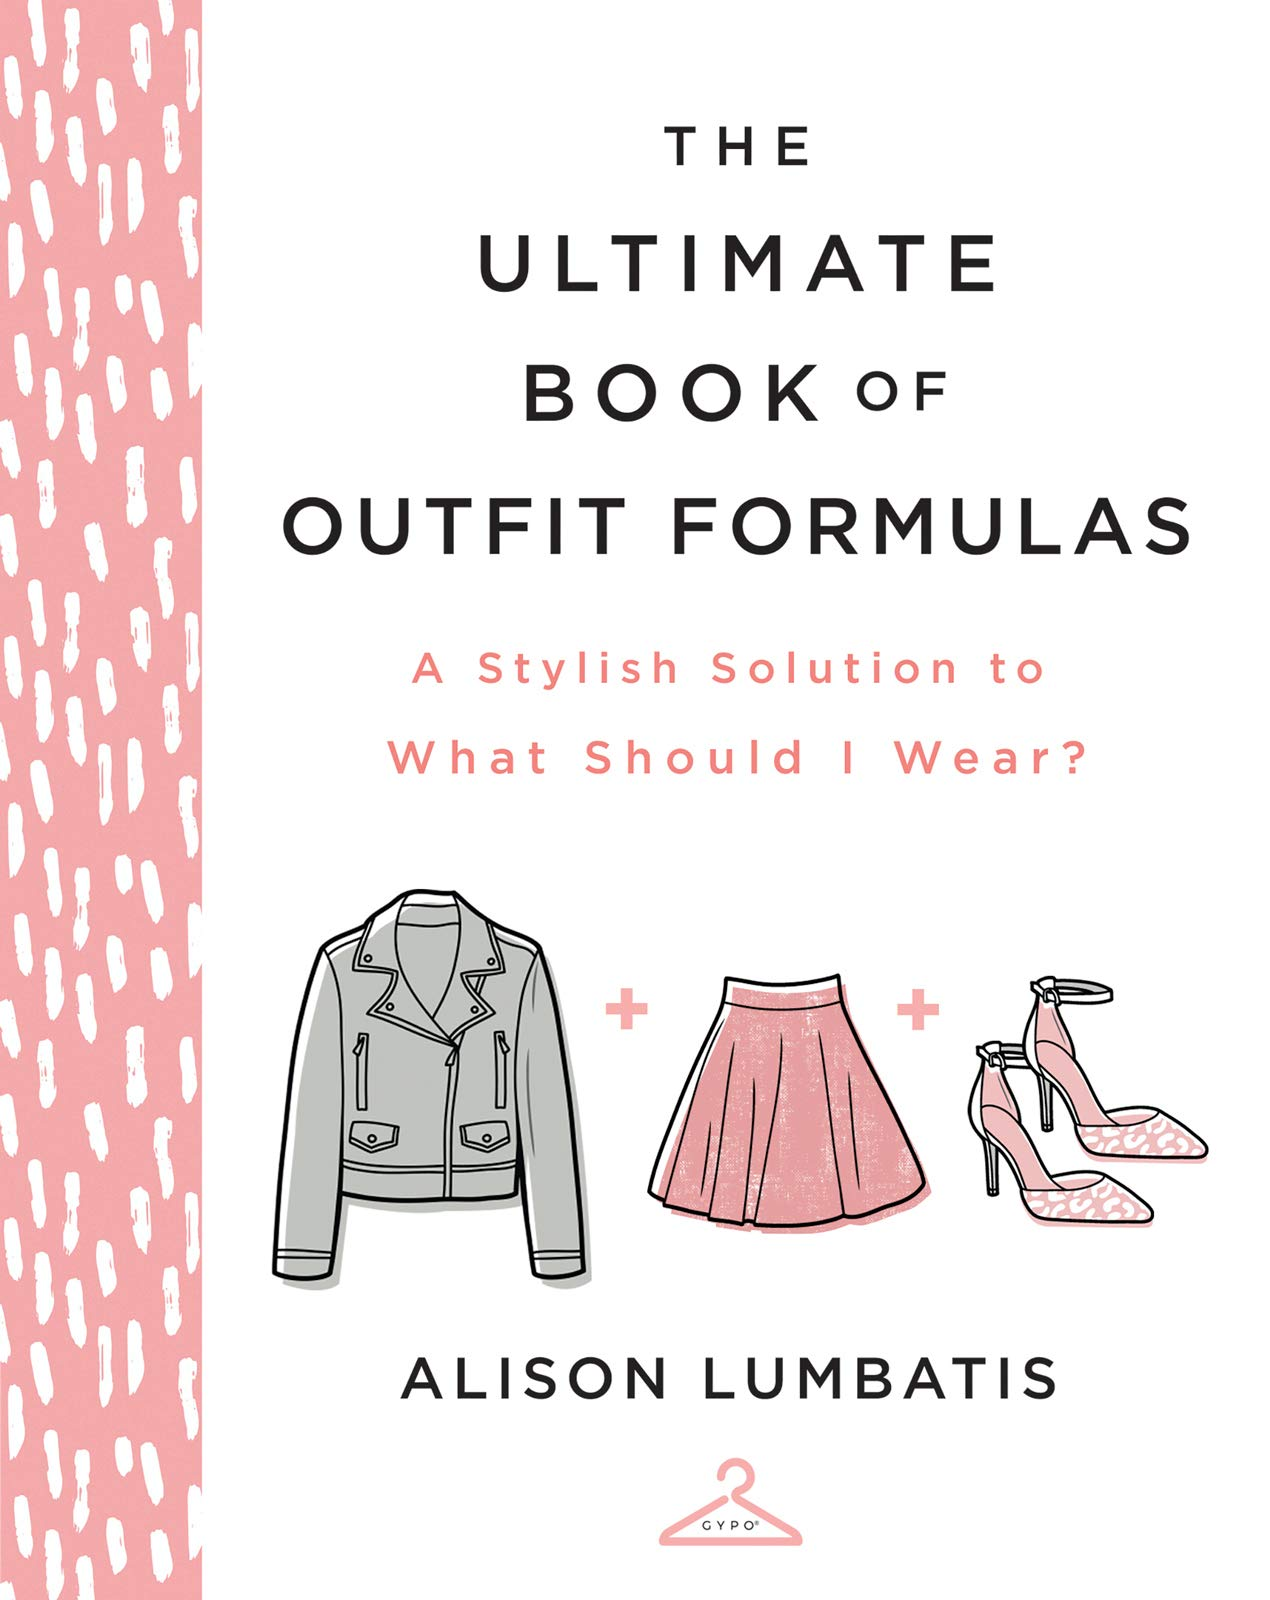 The Ultimate Book of Outfit Formulas